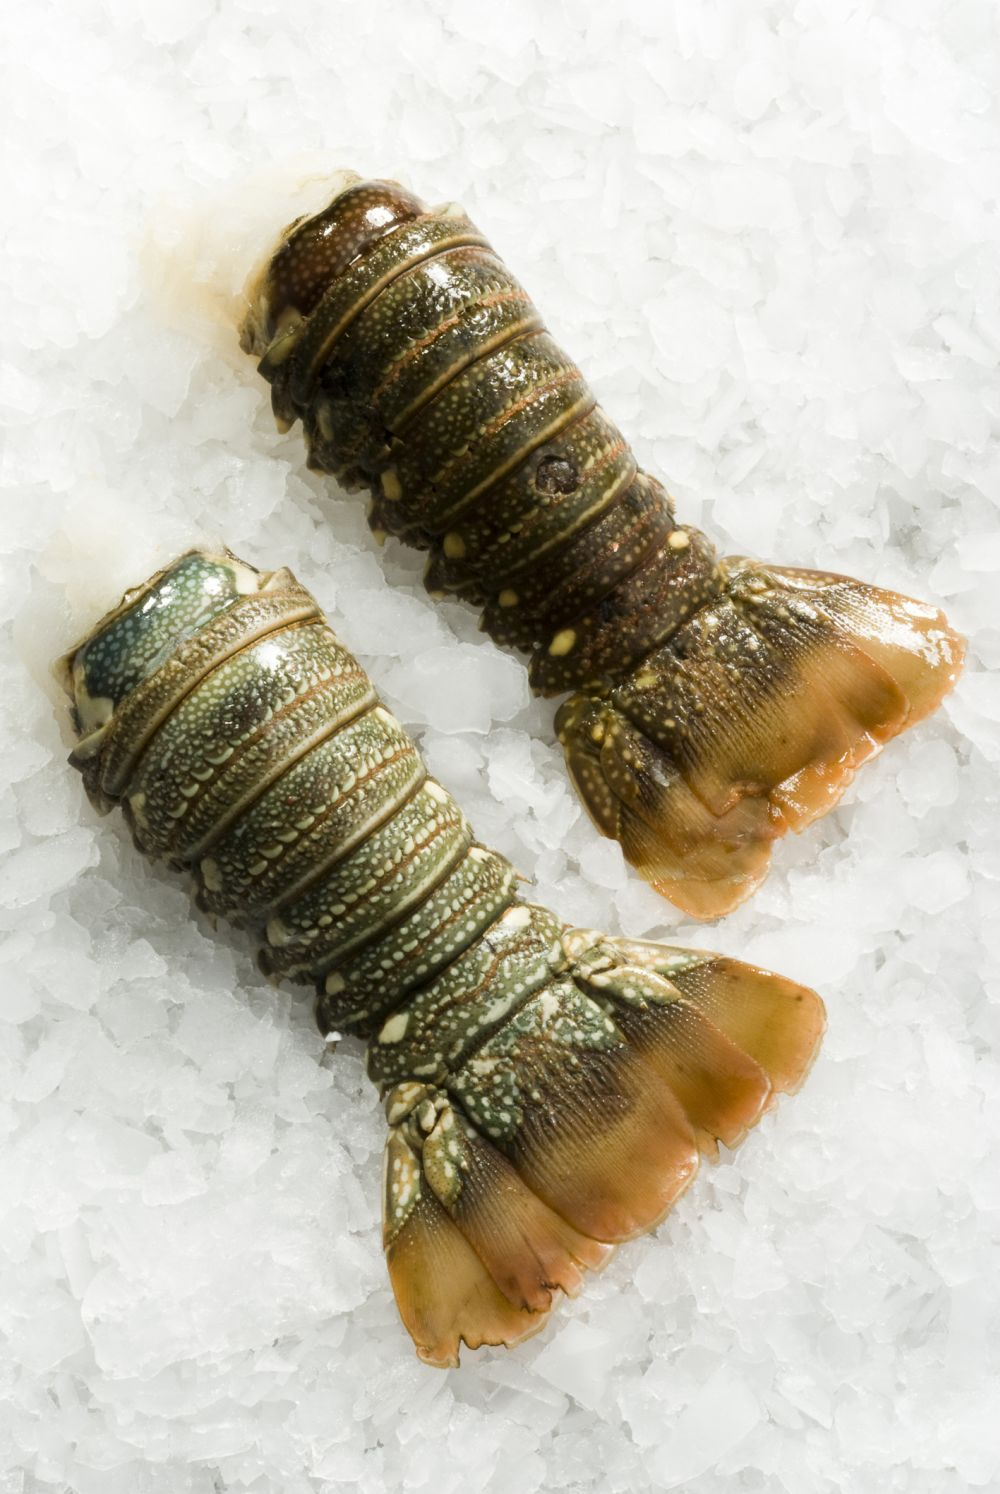 How to freeze lobster tails